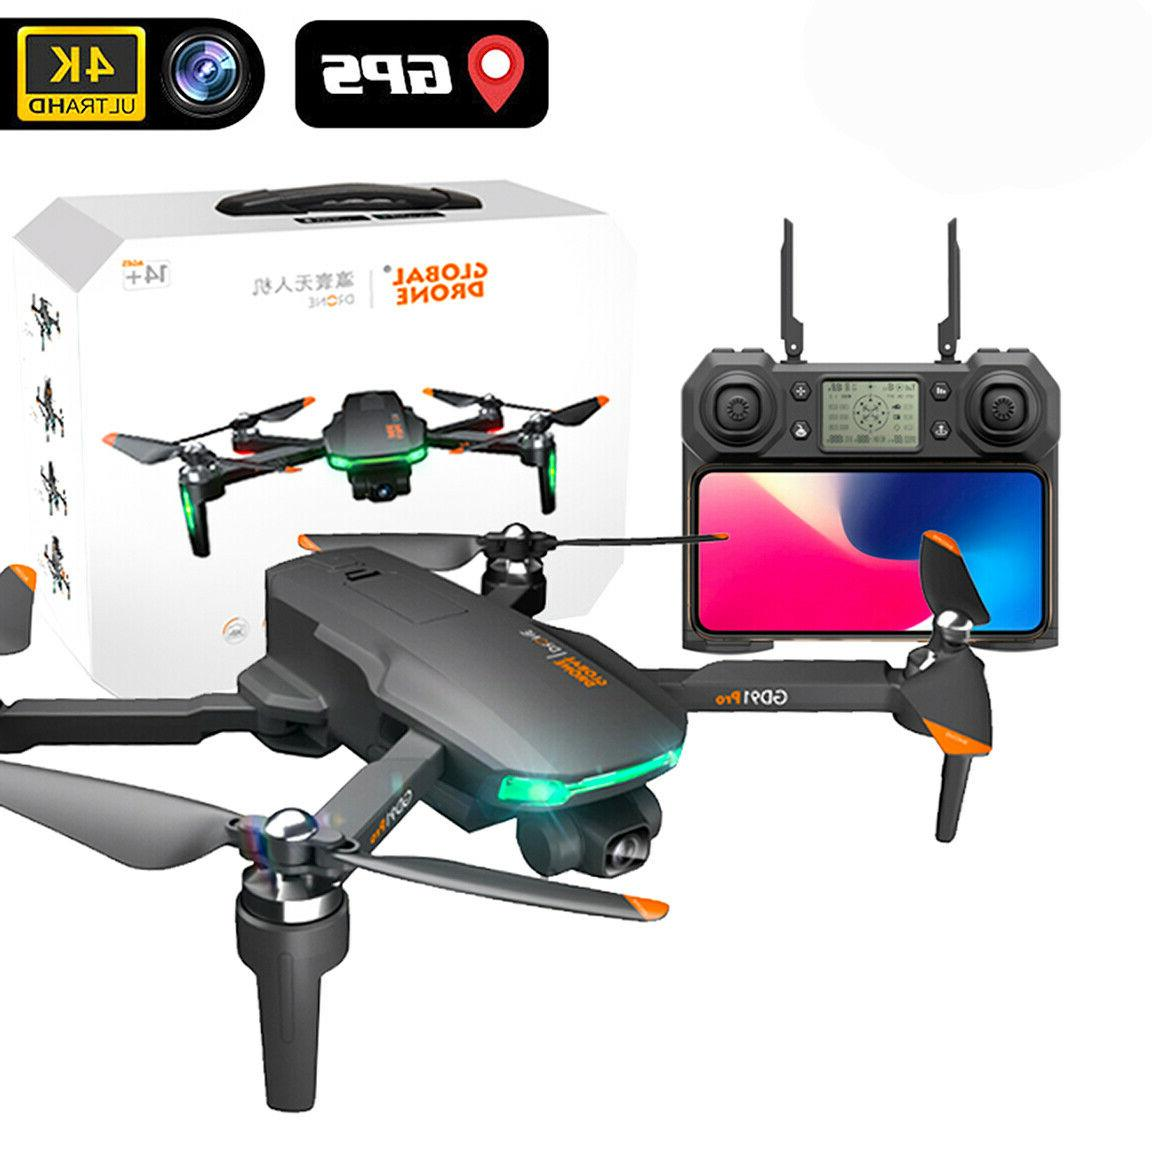 Drone with axis drones stabilizer GPS long